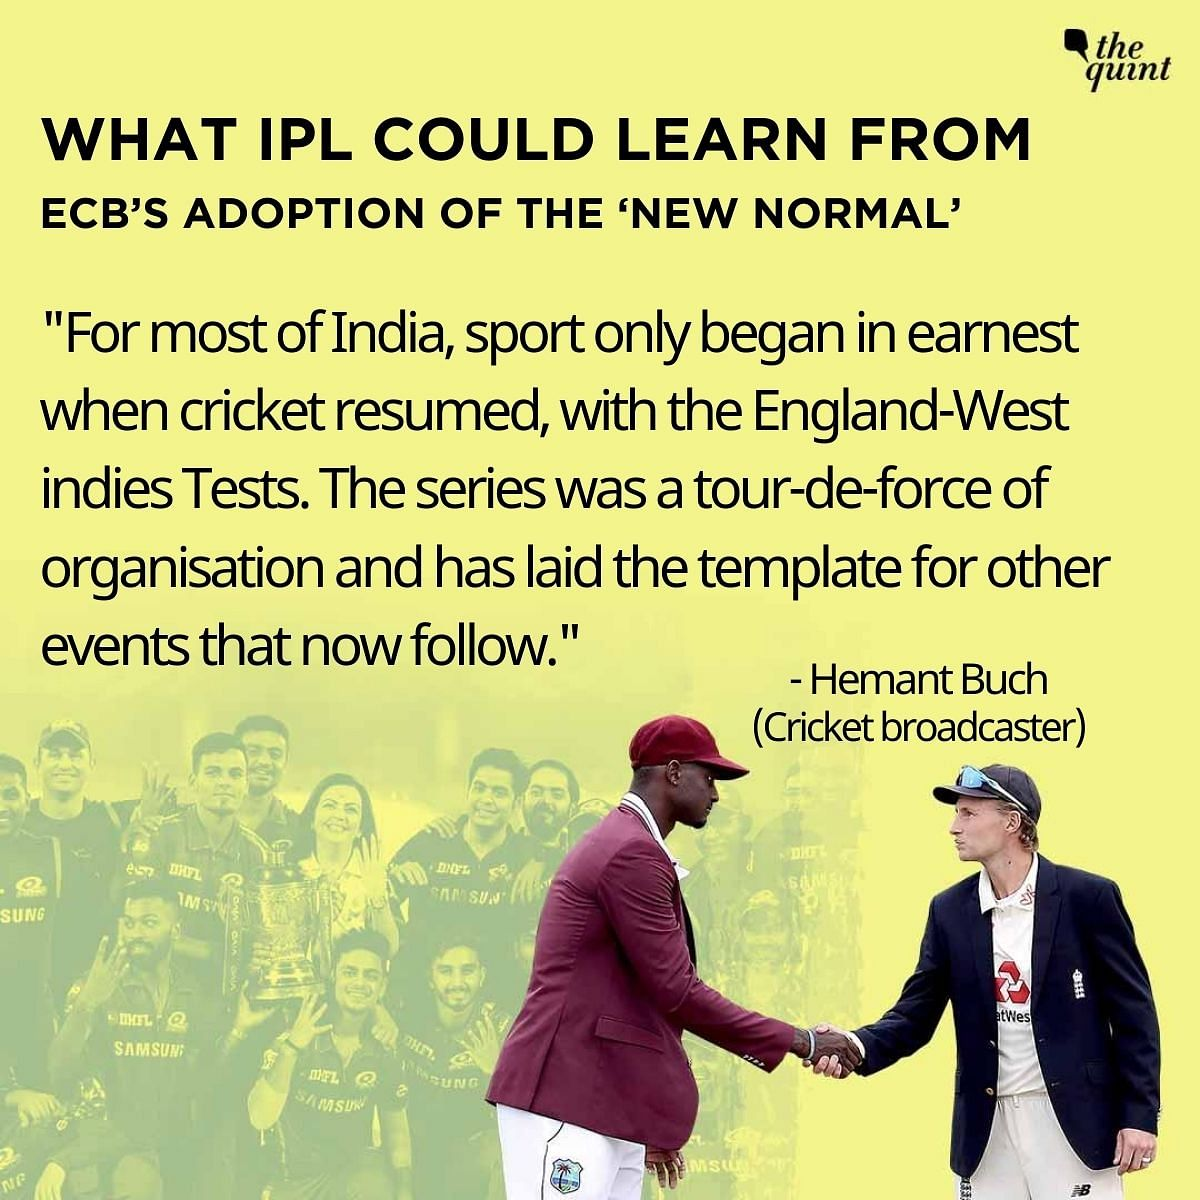 England-WI Test Series Learnings Could Help BCCI Pull Off IPL